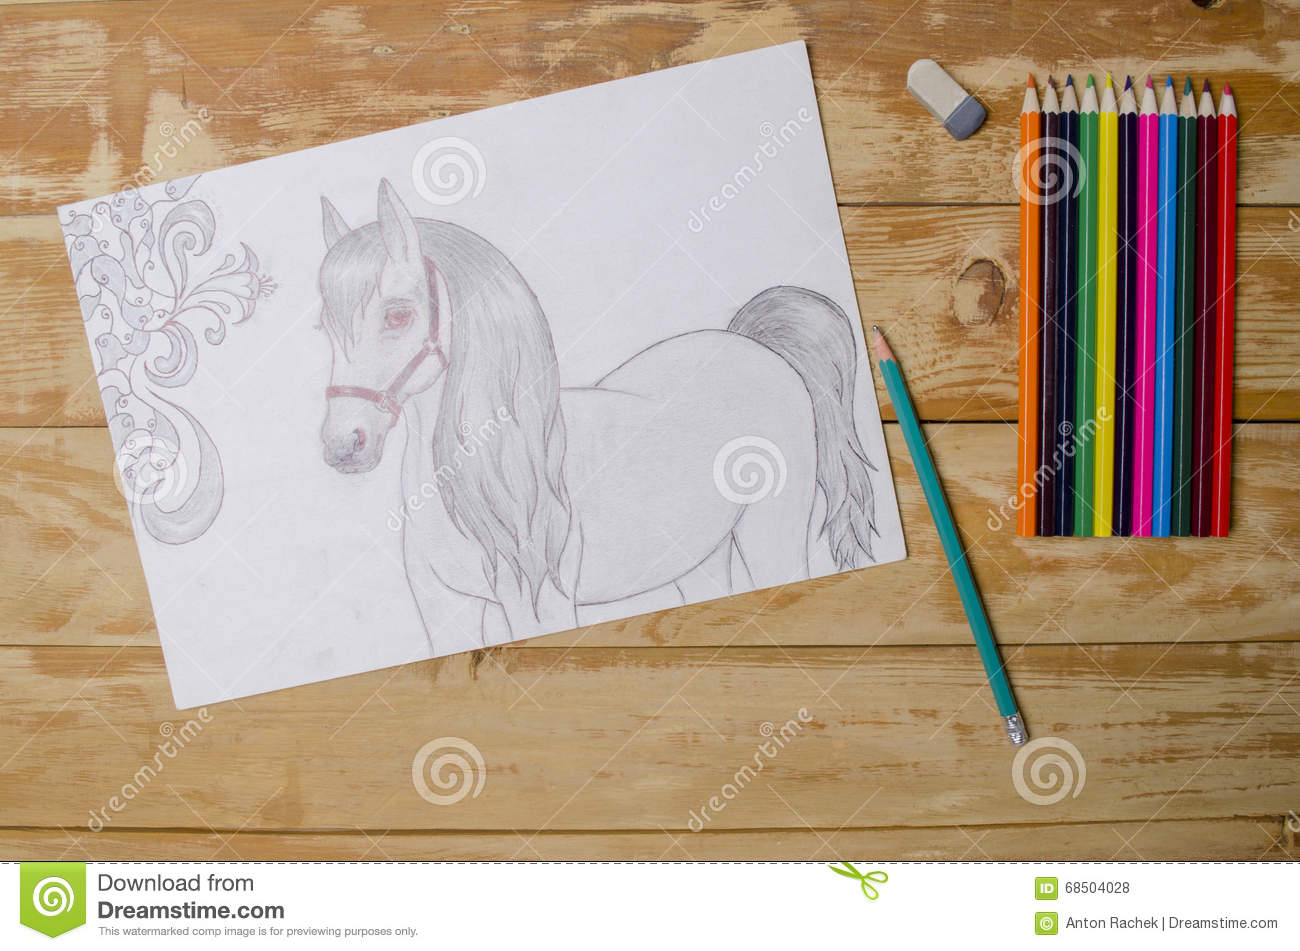 Beautiful Pencil Sketch Horse Photos Free Royalty Free Stock Photos From Dreamstime